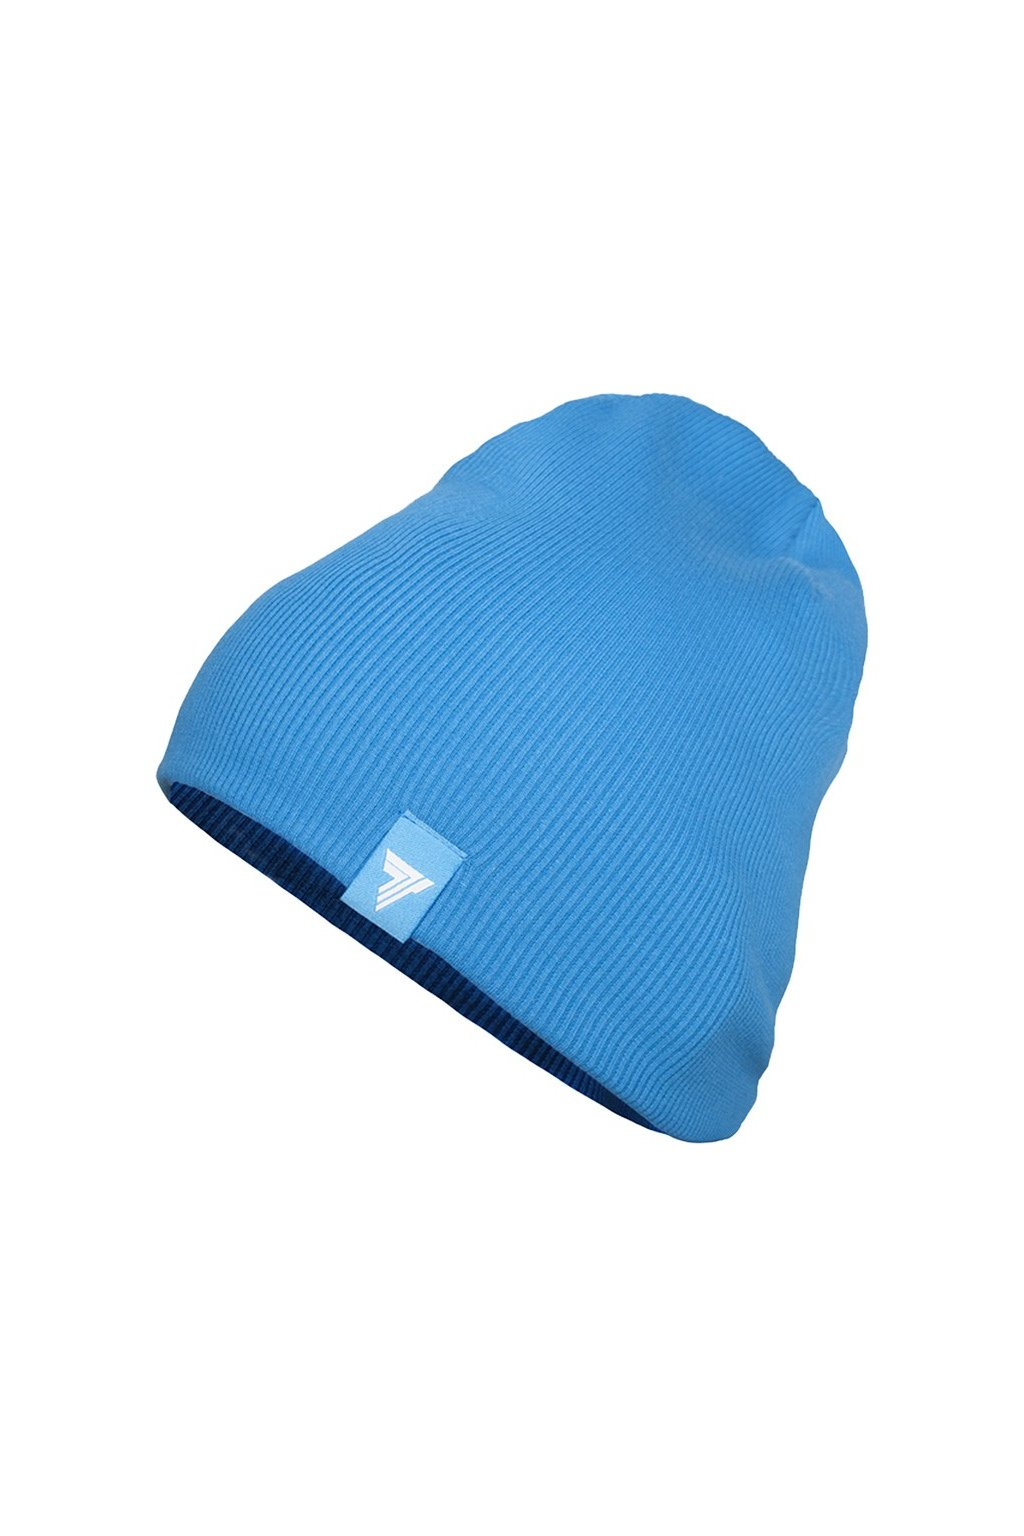 trecwear winter cap 2